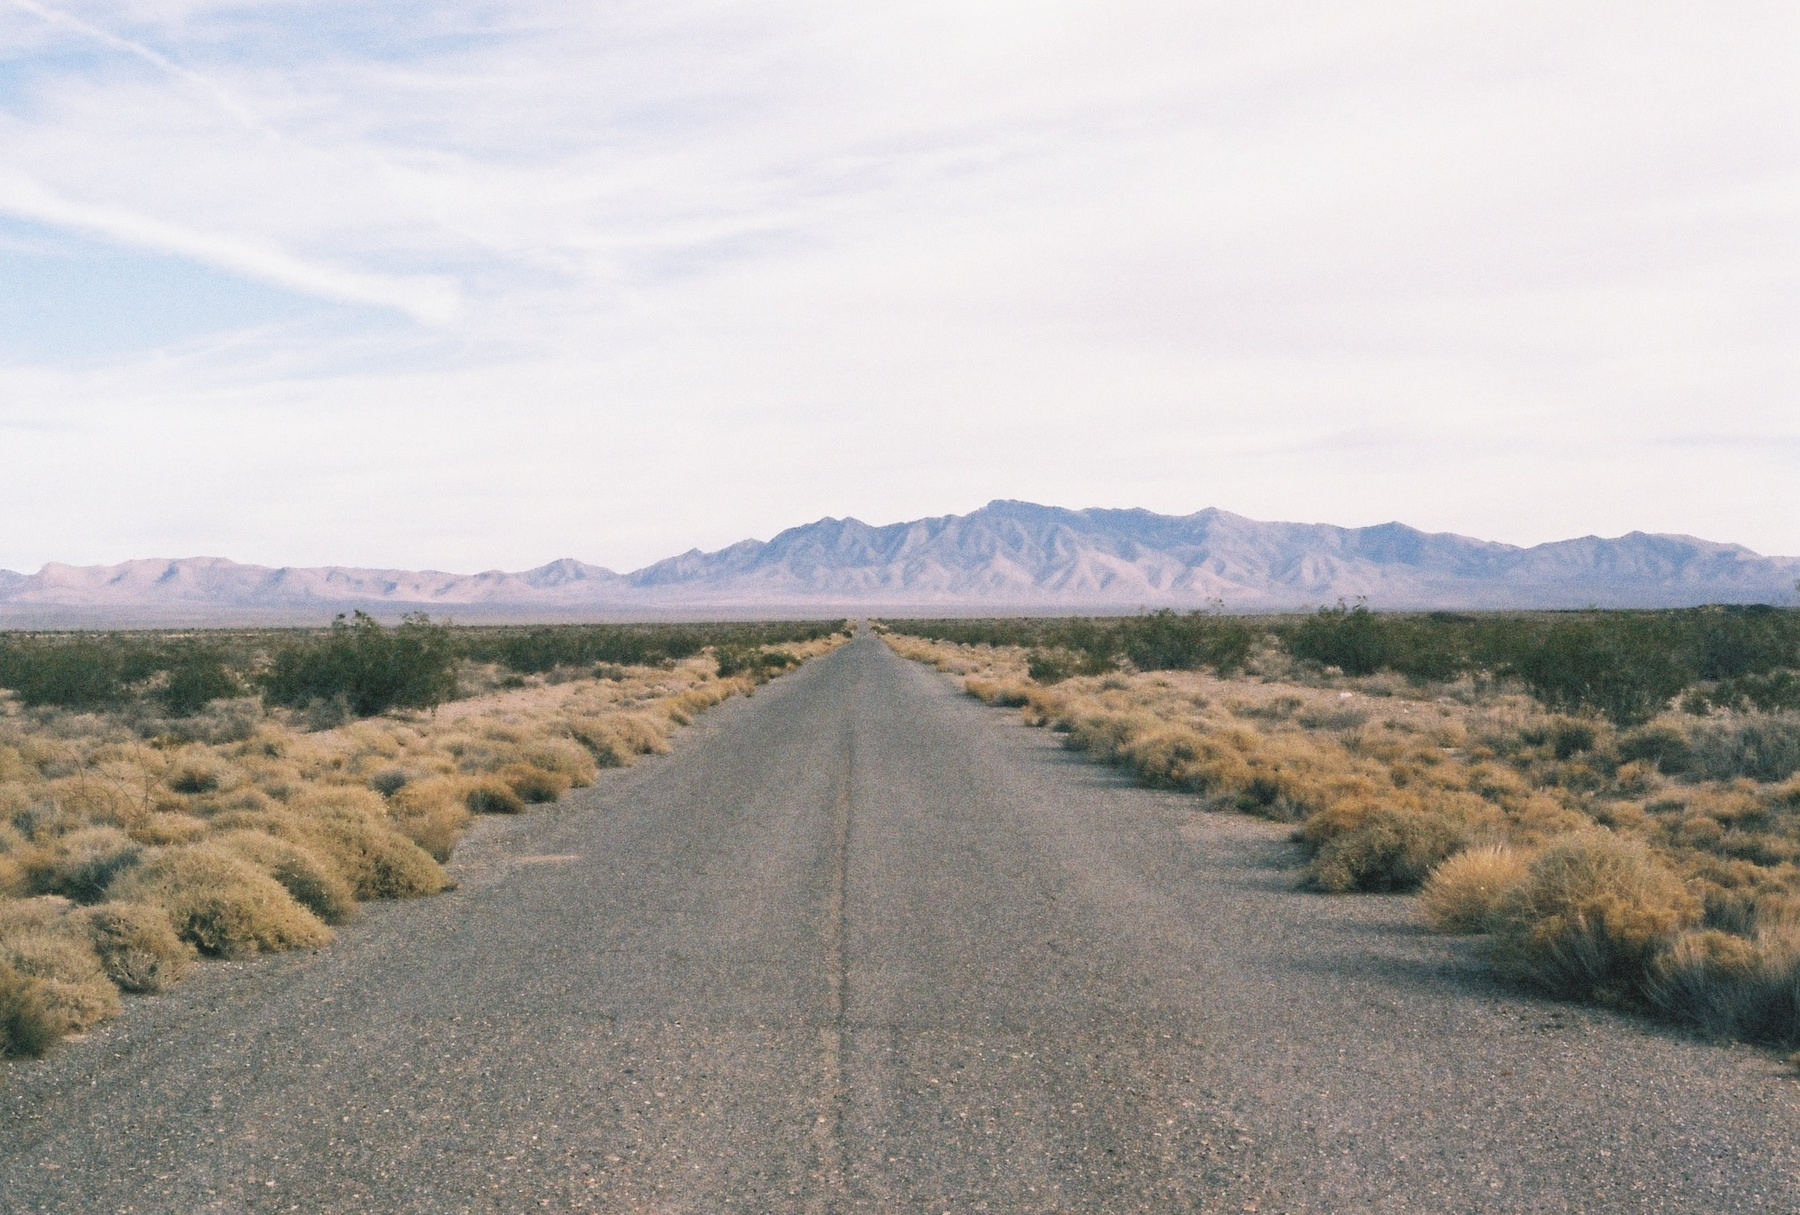 SOUTHERN NEVADA